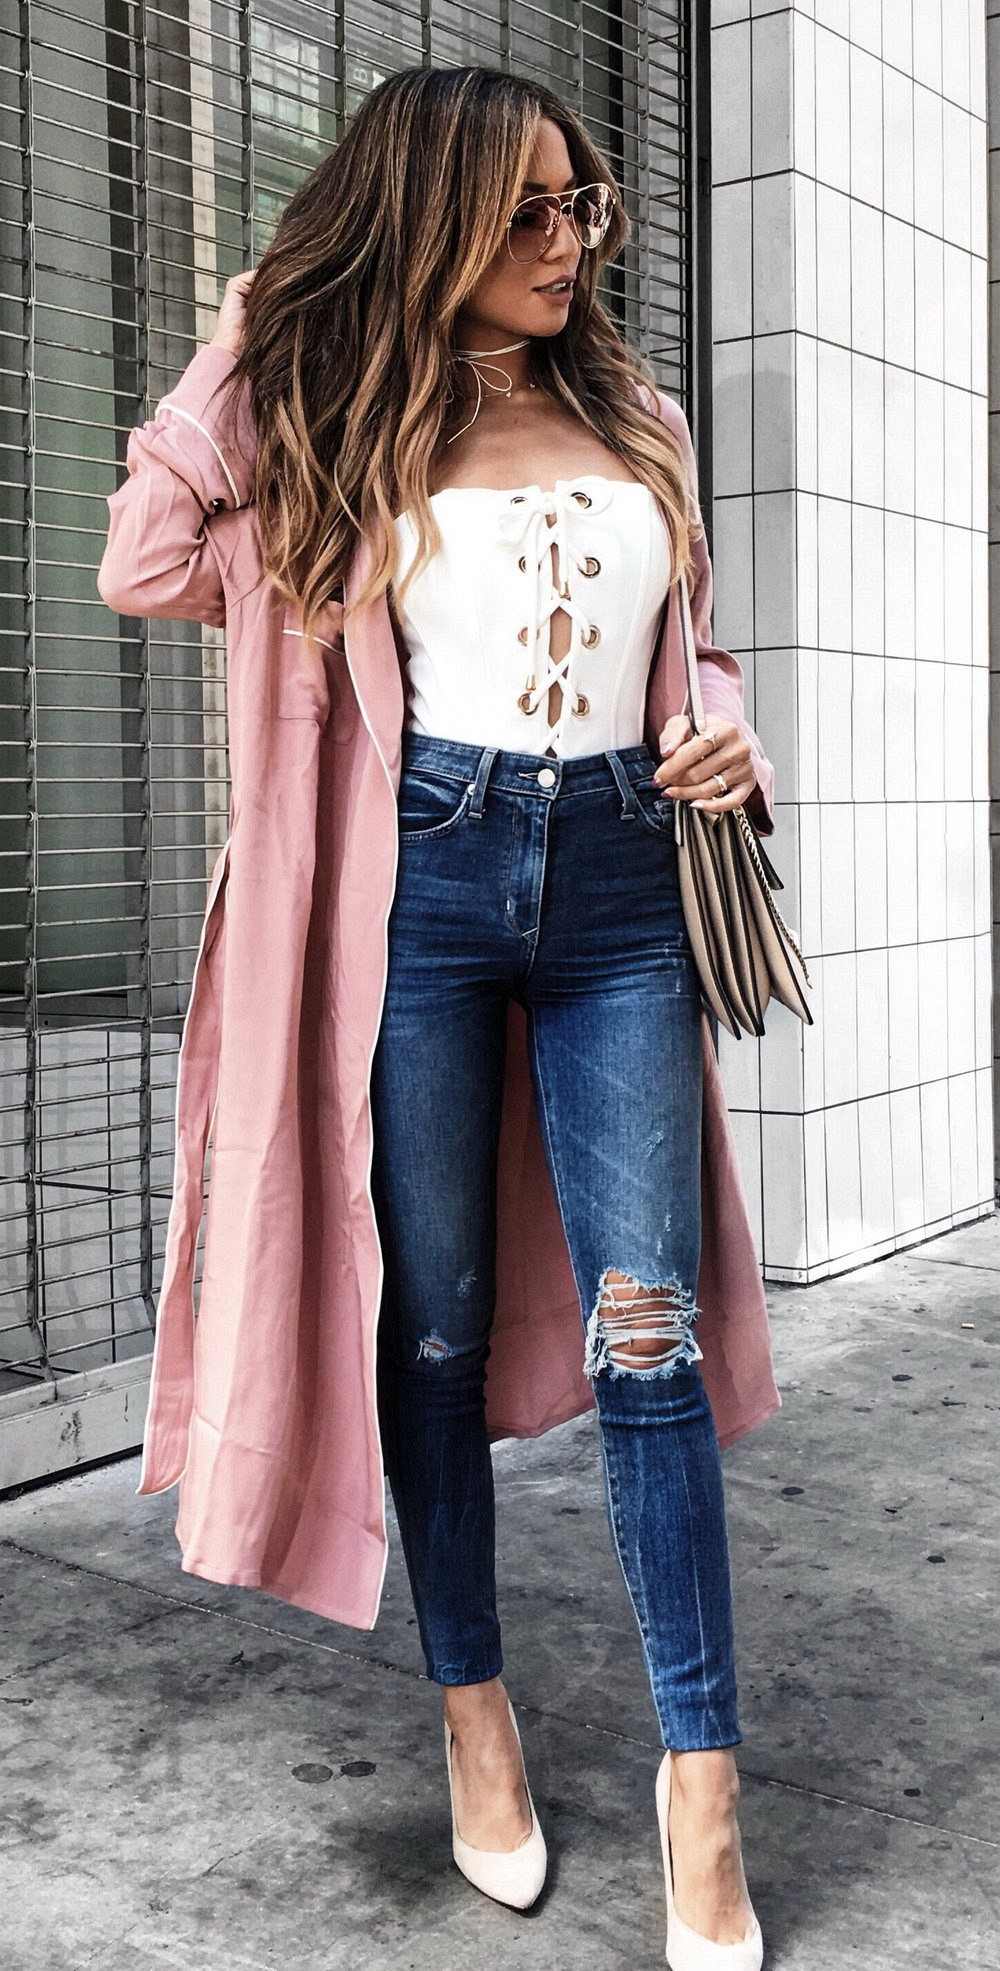 Outfit trendy ideas photo